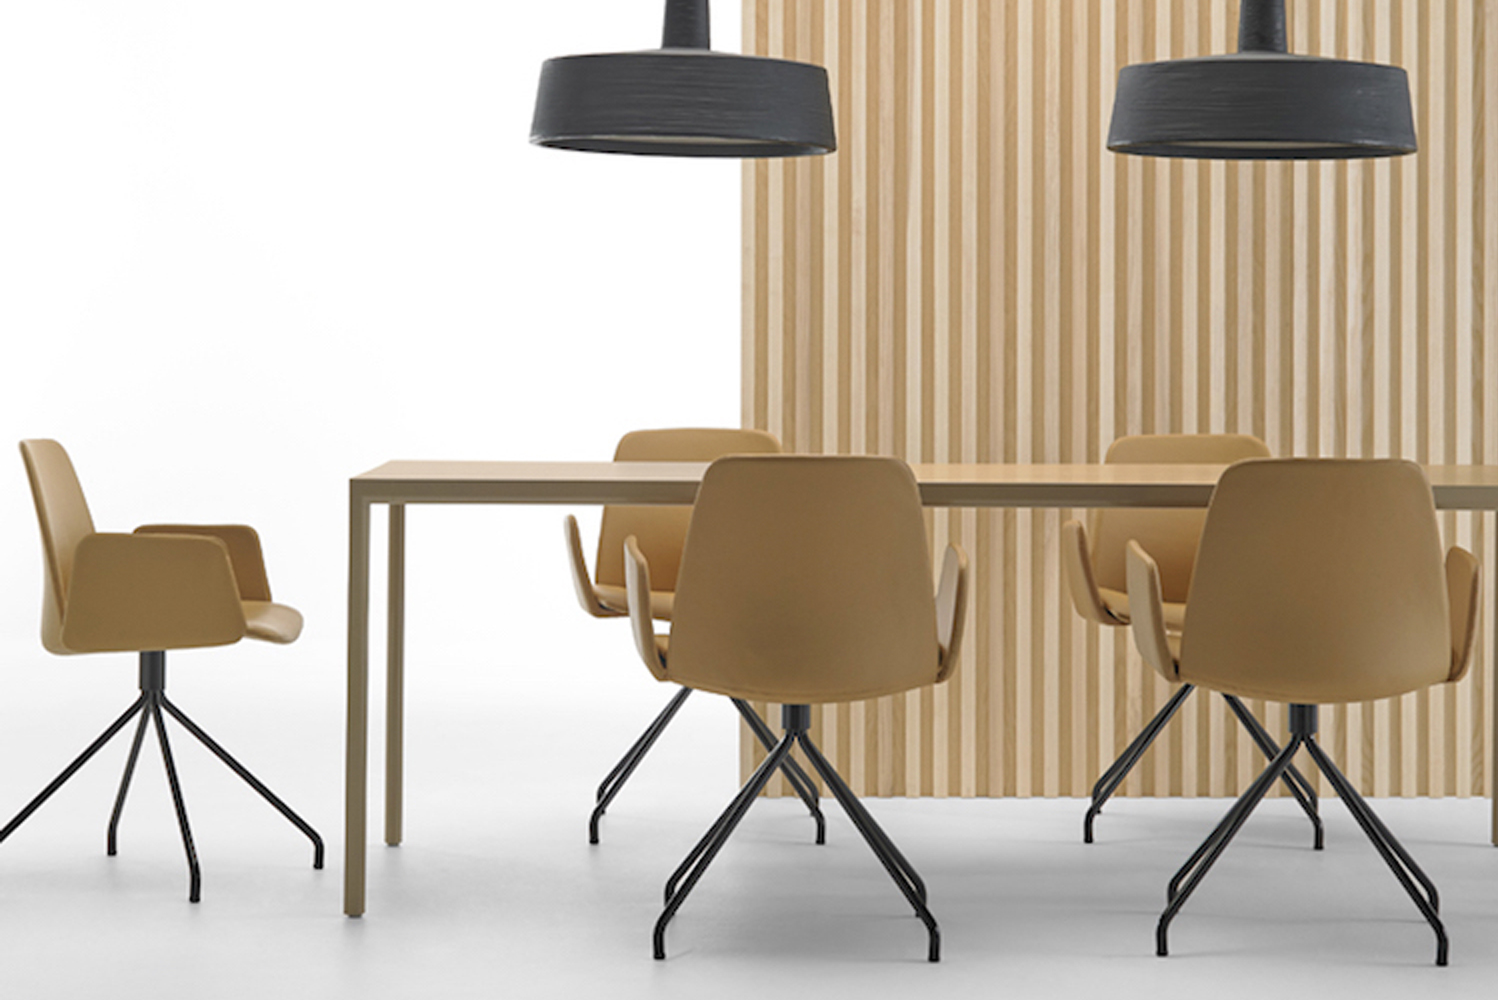 The chairs are a fun addition to any interior thanks to the number of color options available.